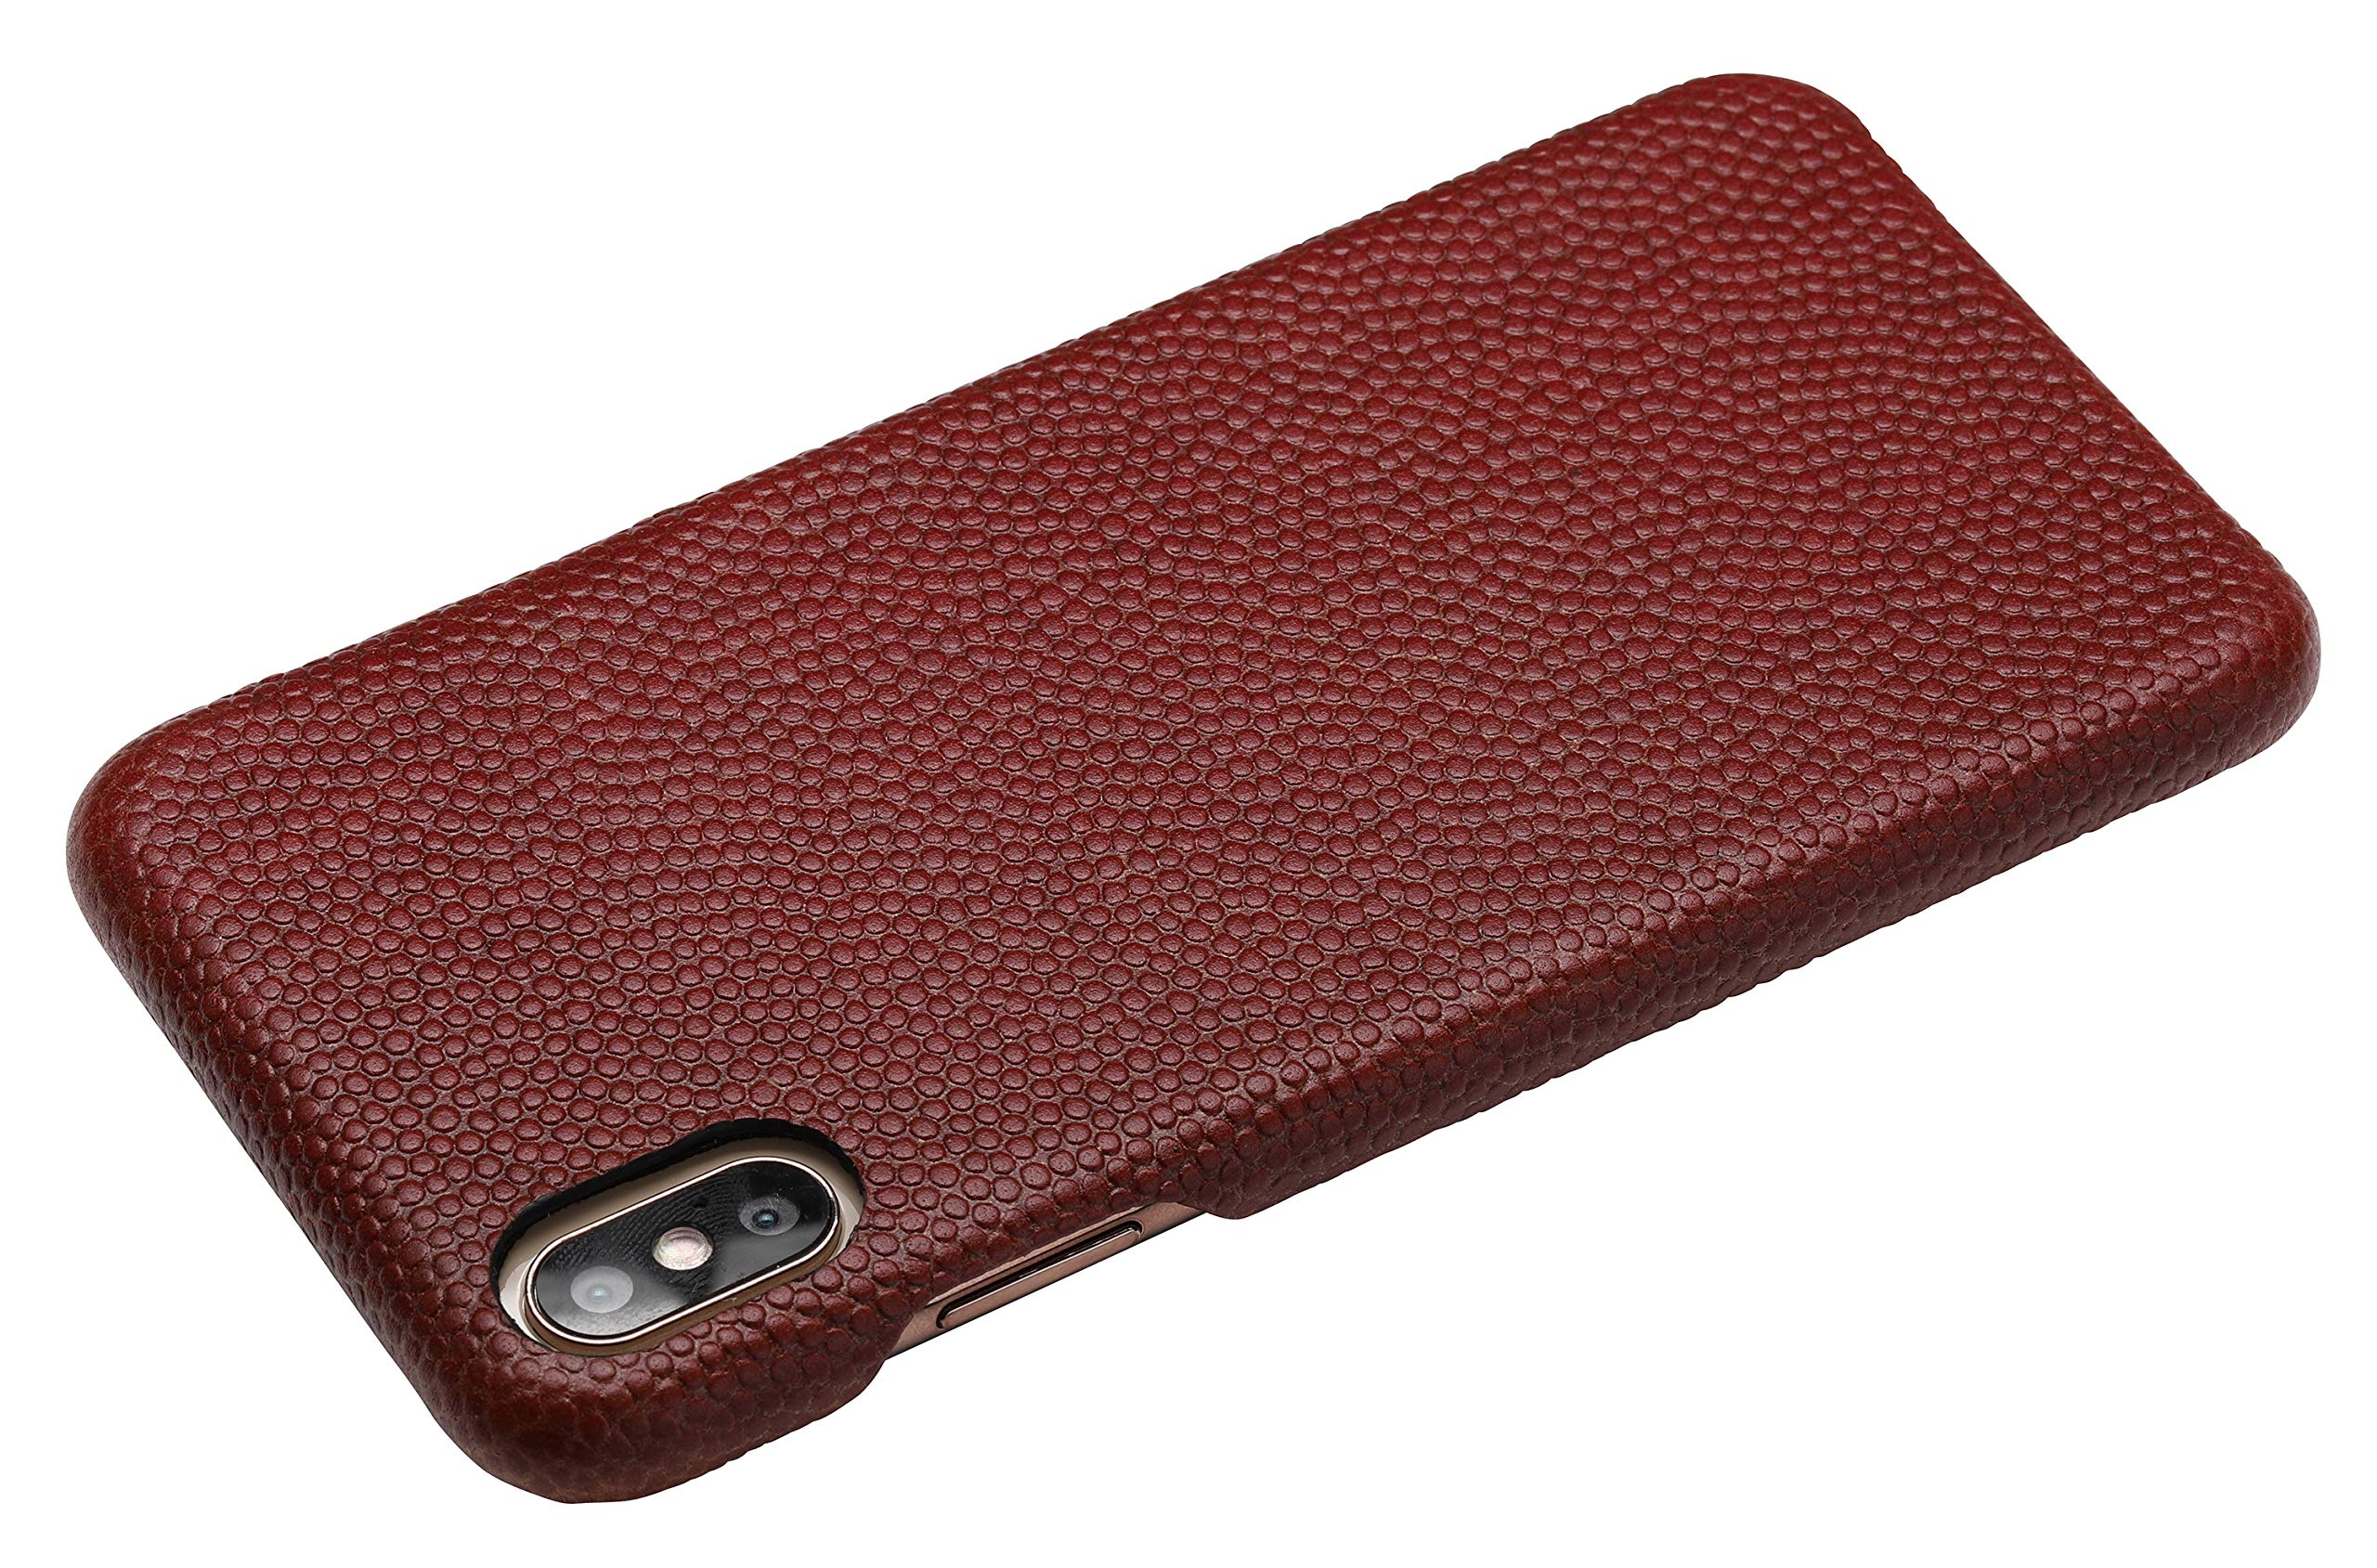 mcmadley Natural Leather Football Phone Case for iPhone Xs Max, Ultra Thin, Slim Matte Finish, Protective Grip, Light Weight, Made with Real Pro Football Leather